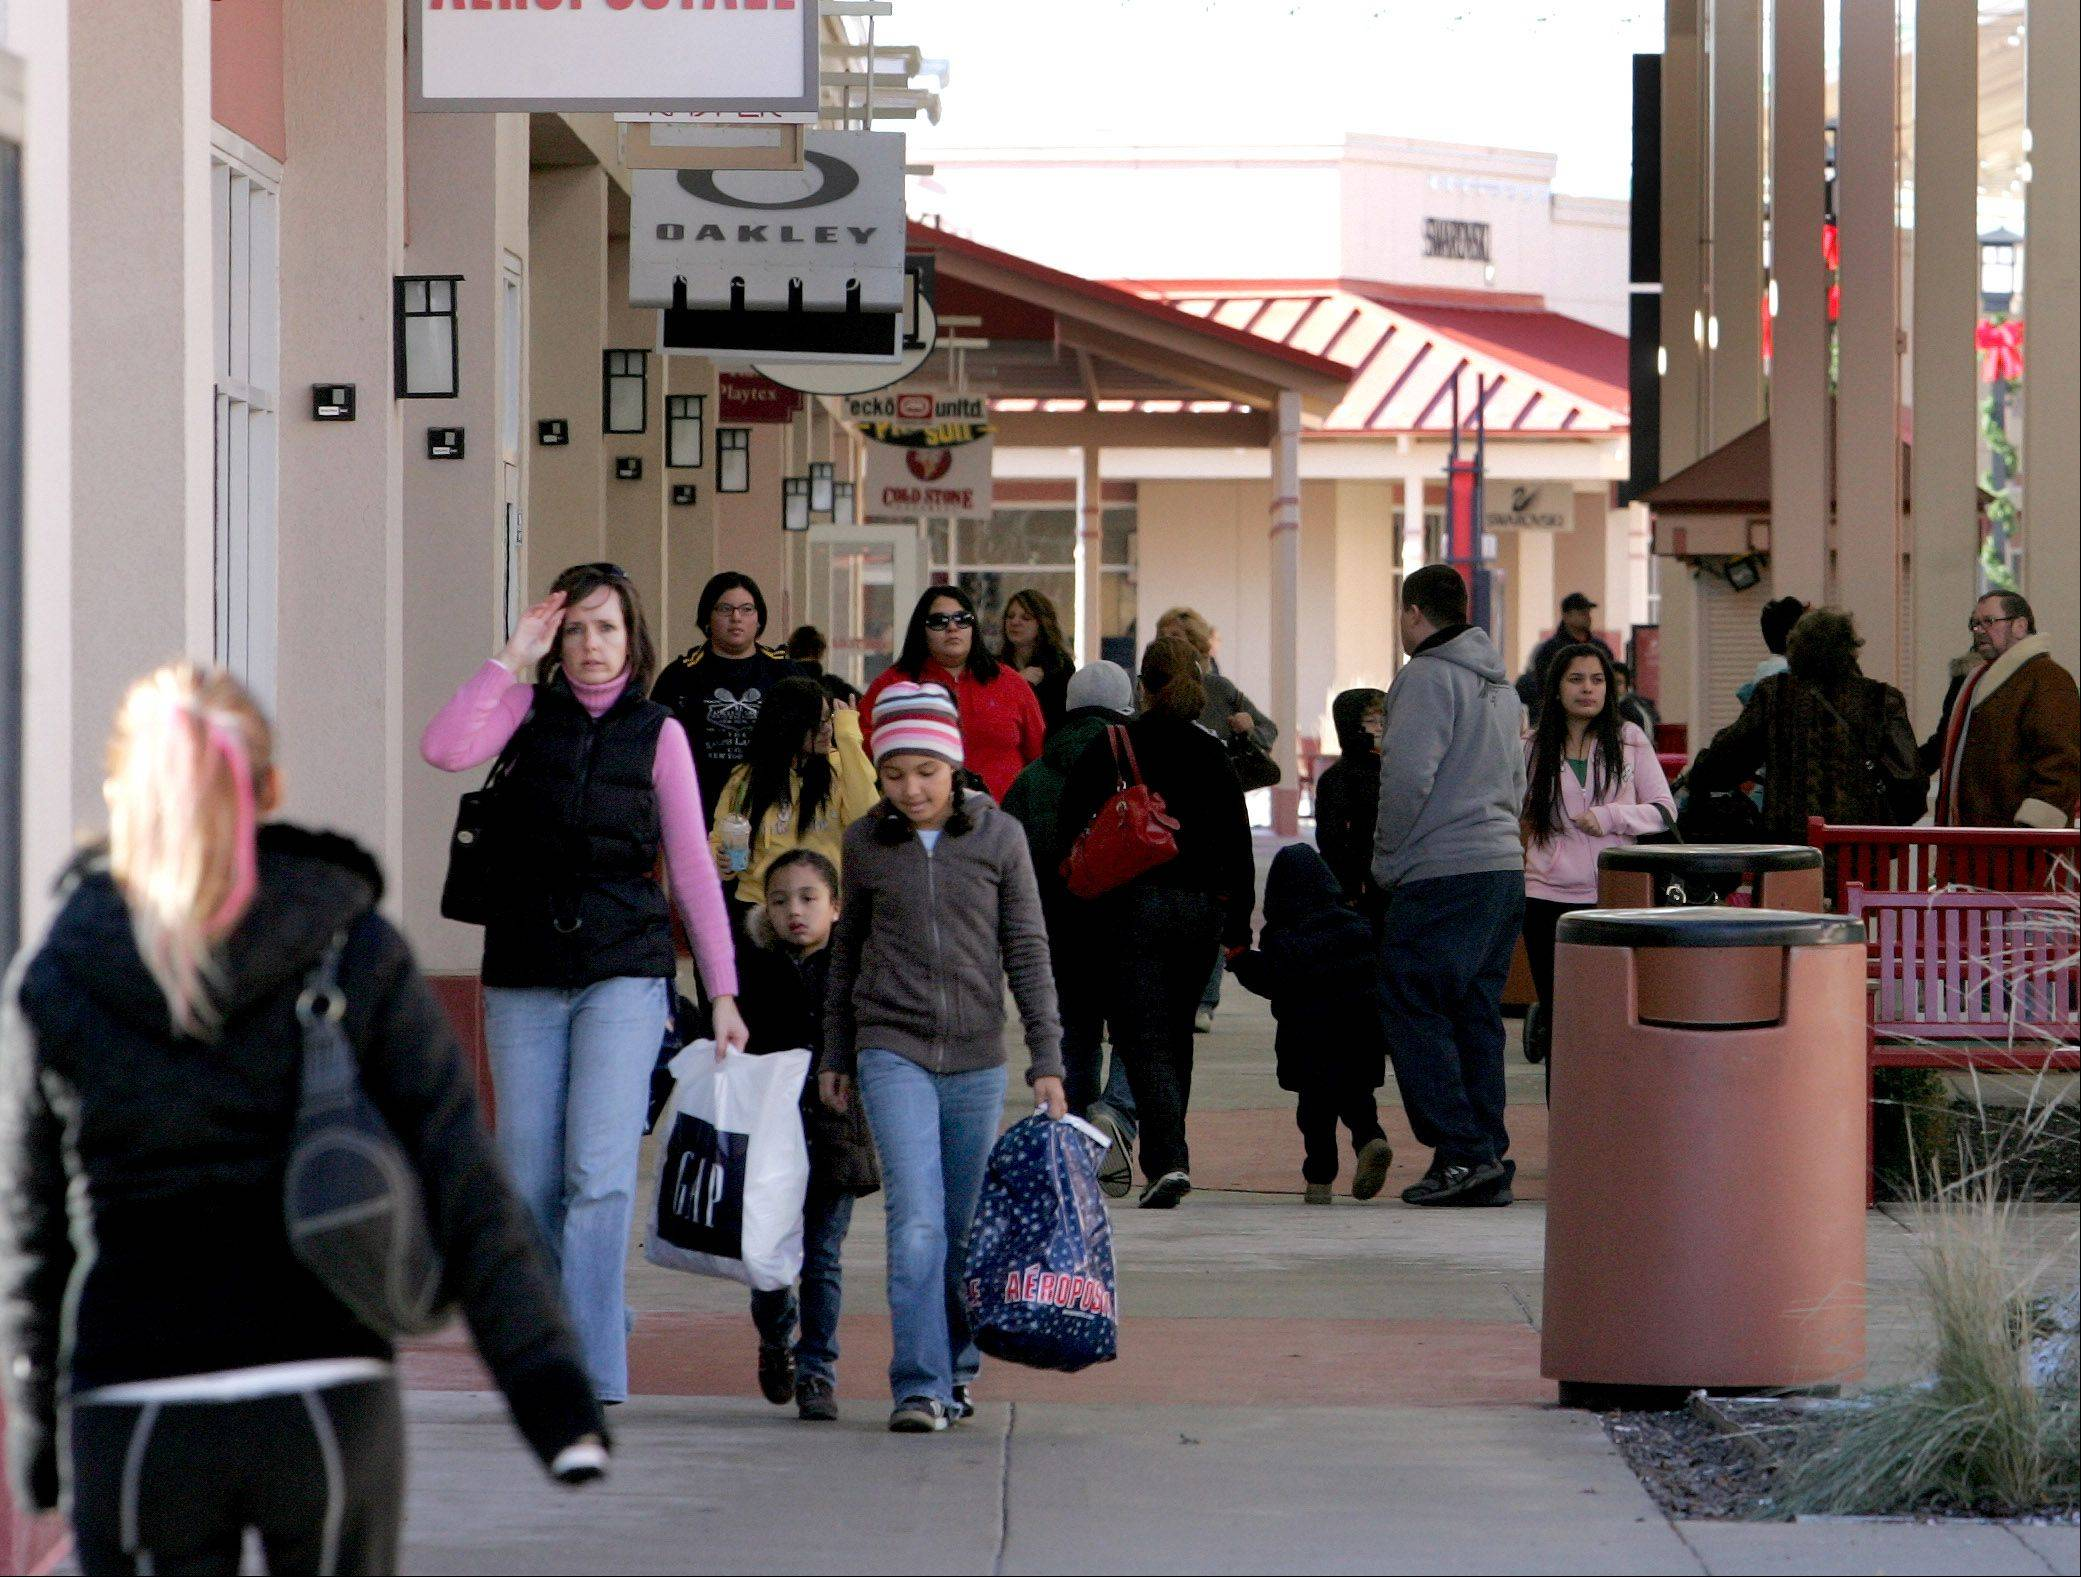 Plans are in the works for a significant expansion of Chicago Premium Outlets along I-88 in Aurora.